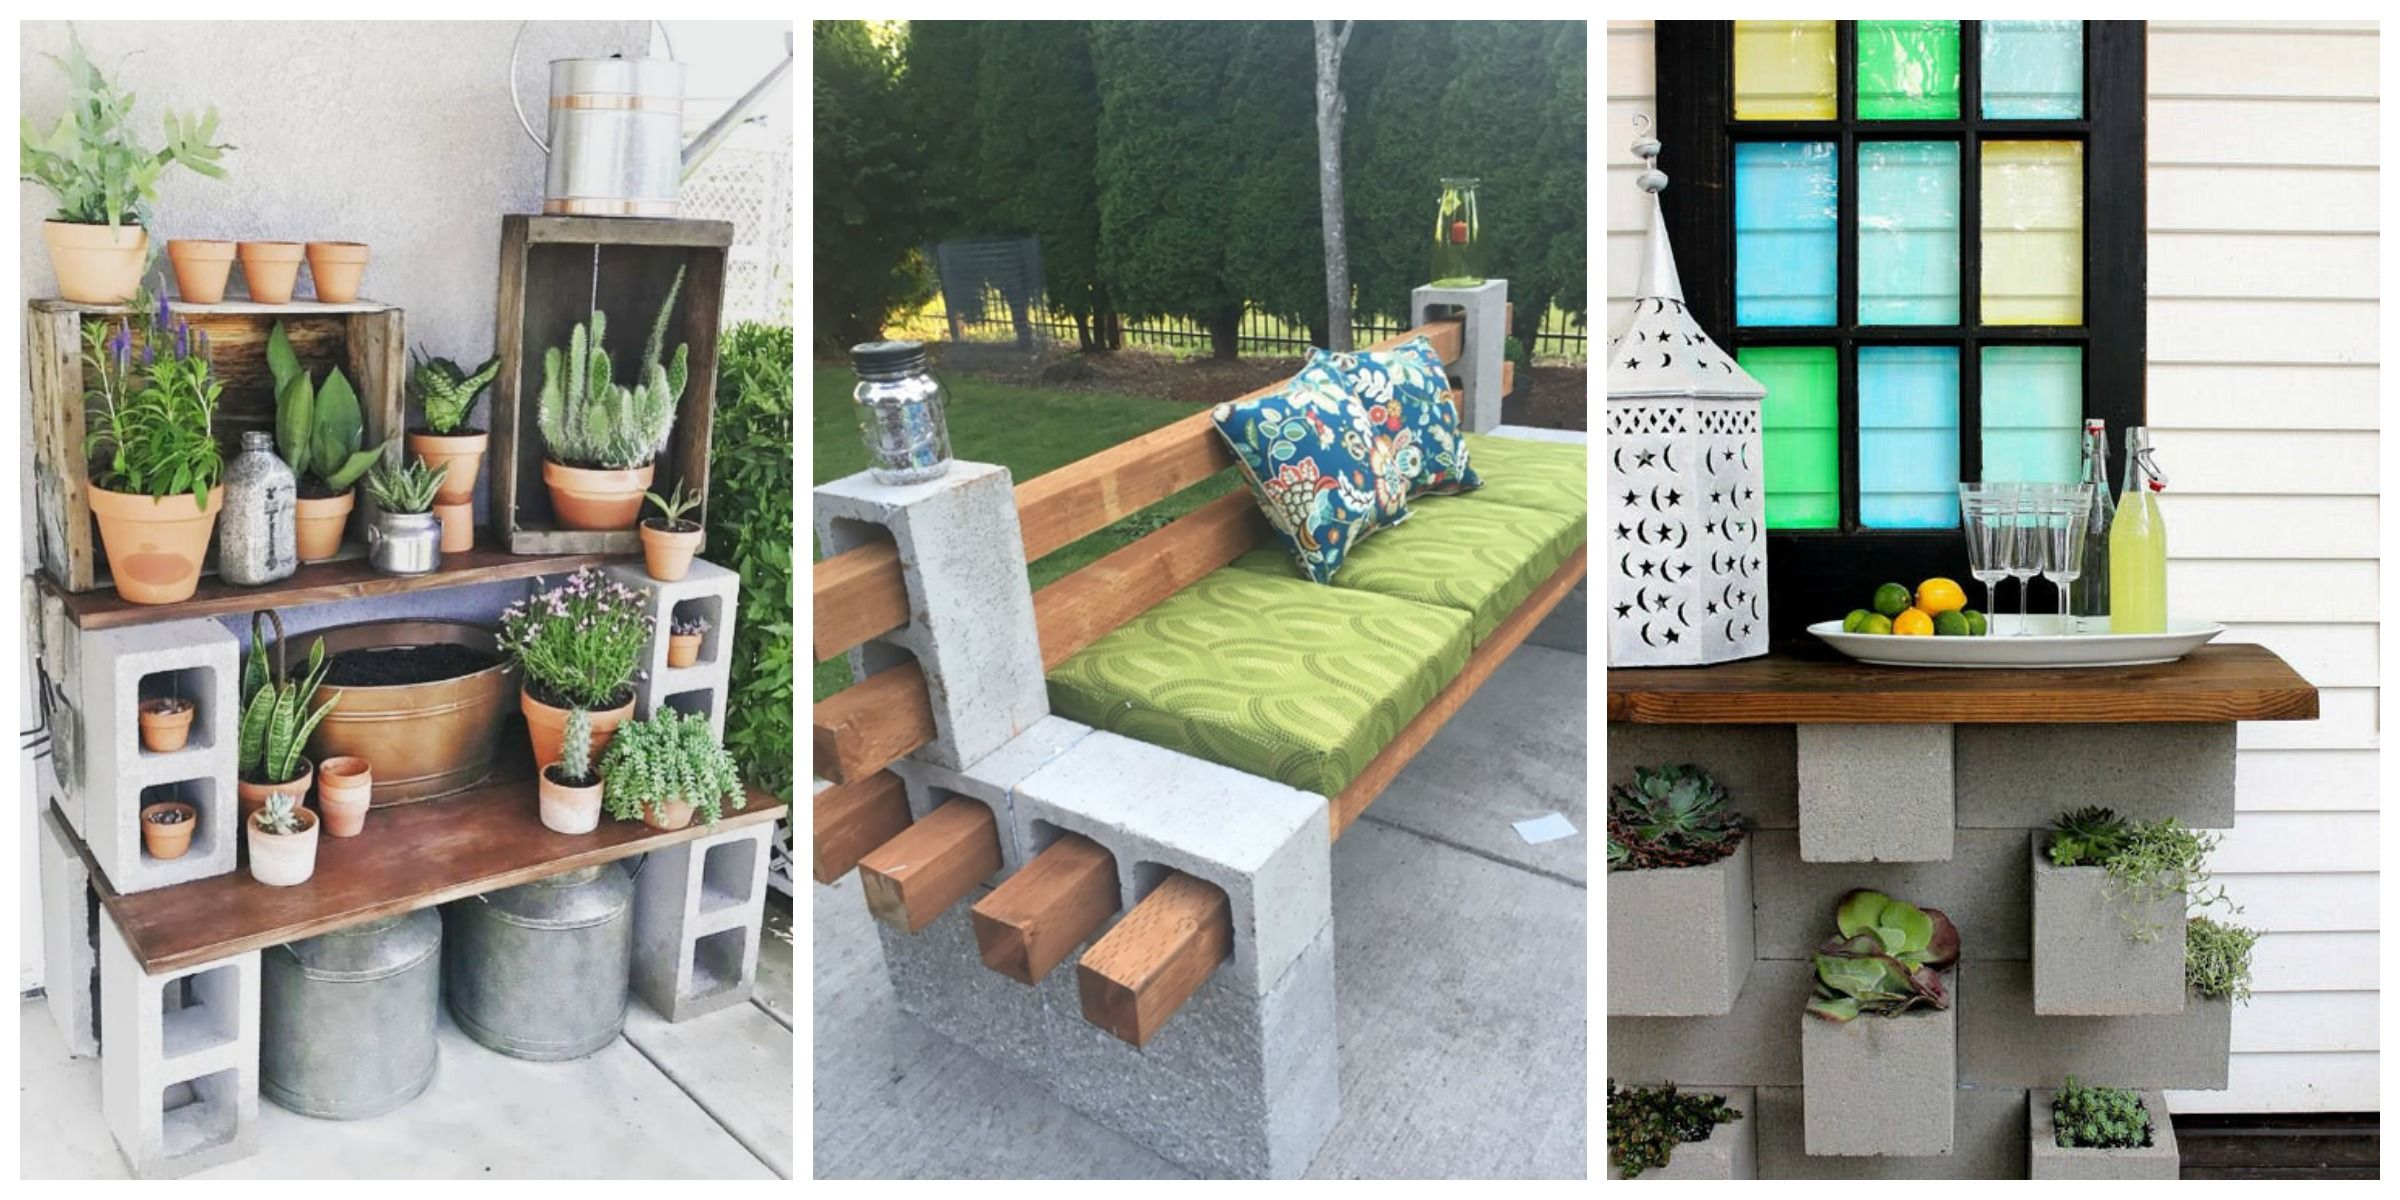 Genius Ways People Are Using Cinder Blocks In Their Backyards How To Use Cinder Blocks In Your Backyard